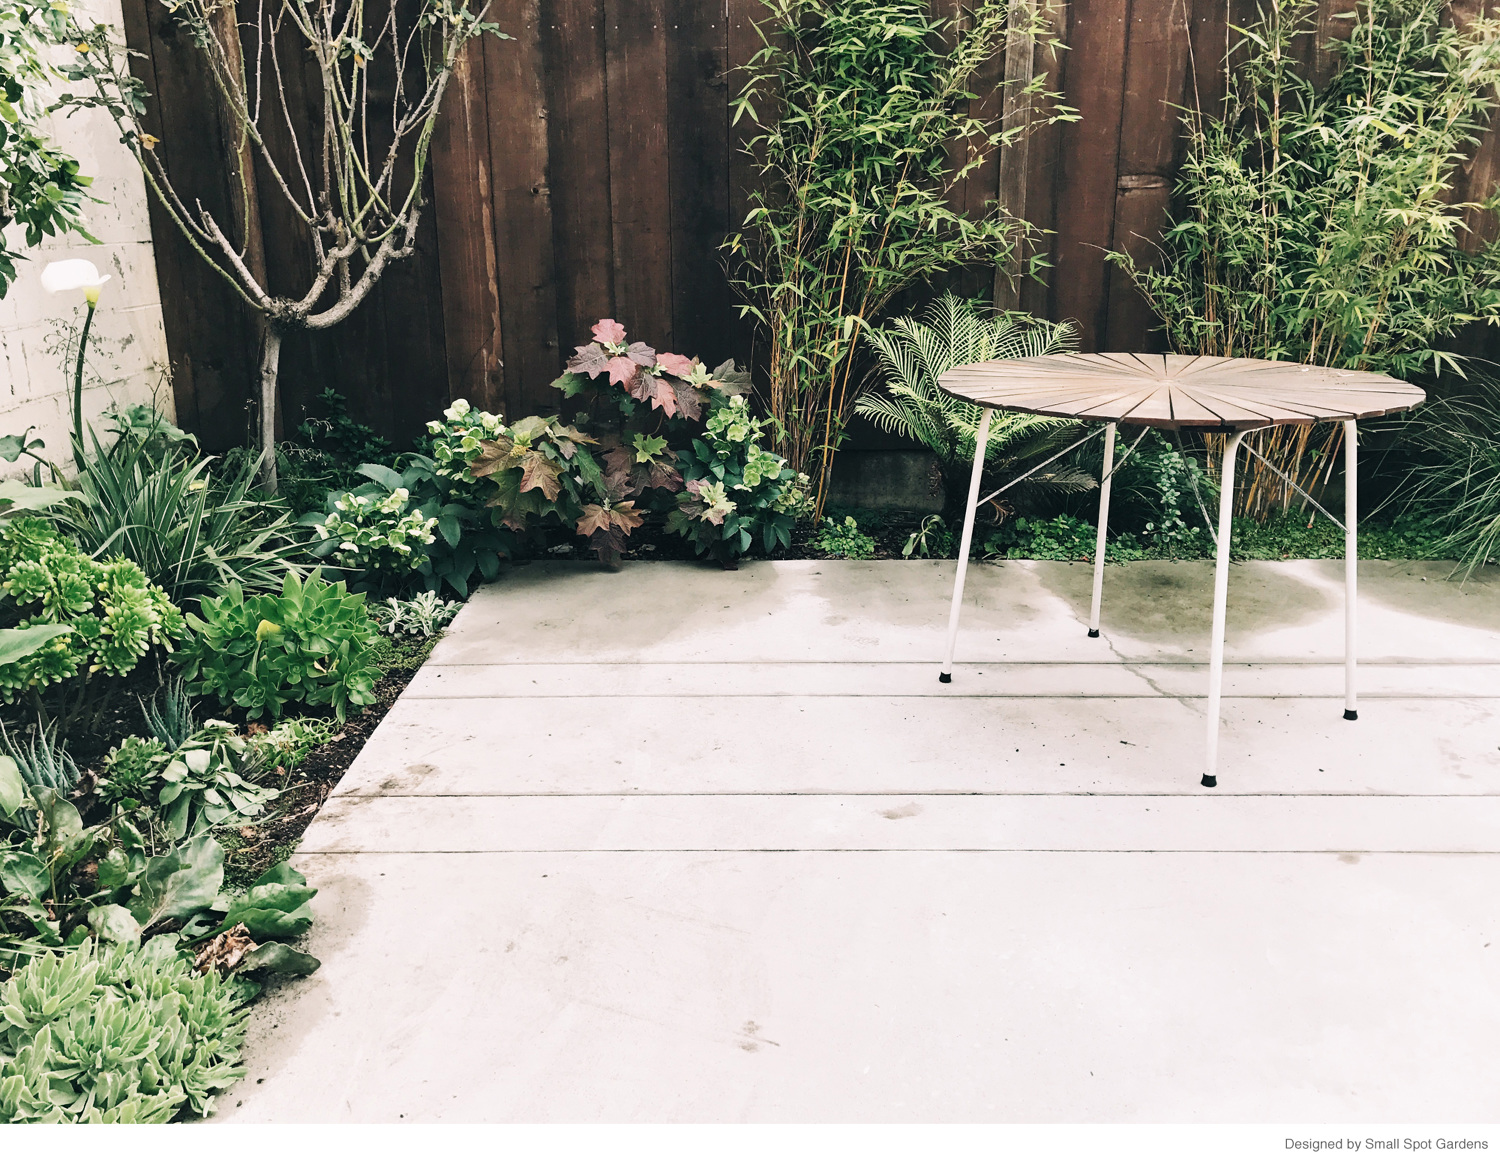 ethan bodnar is a landscape designer garden photographer and artist in oakland california hes worked with east bay wilds nursery small spot gardens - Garden Furniture East Bay